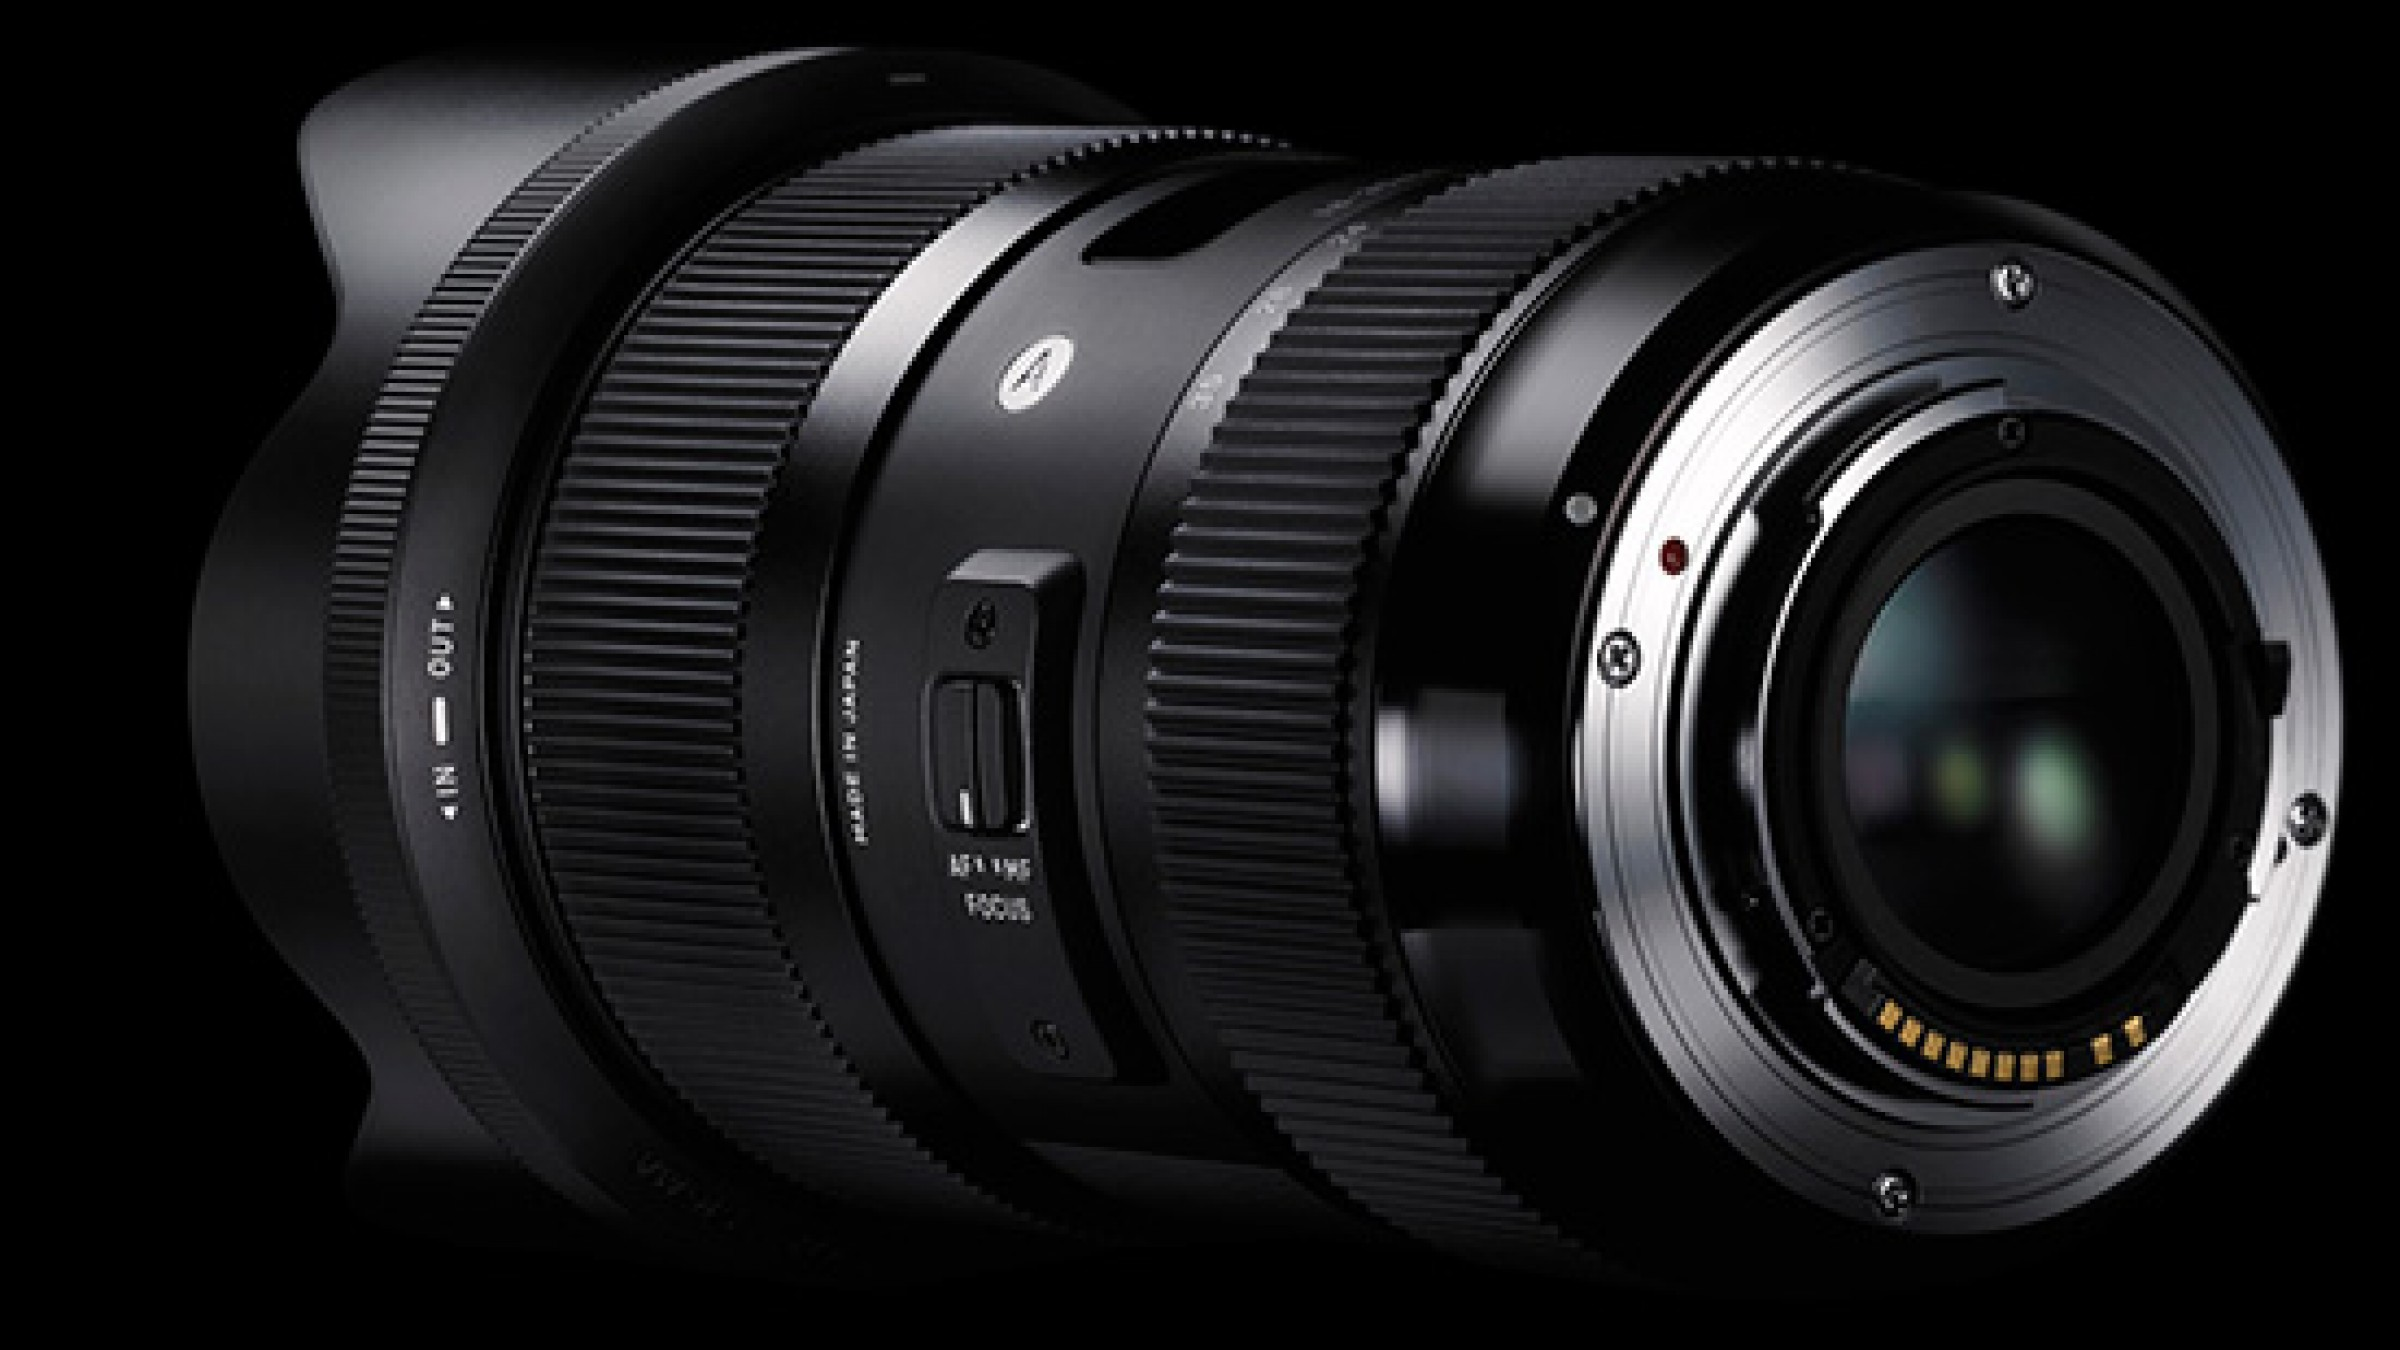 Sigma 18-35 F/1.8 Looks to Be One of the Best \'Budget\' Filmmaking ...